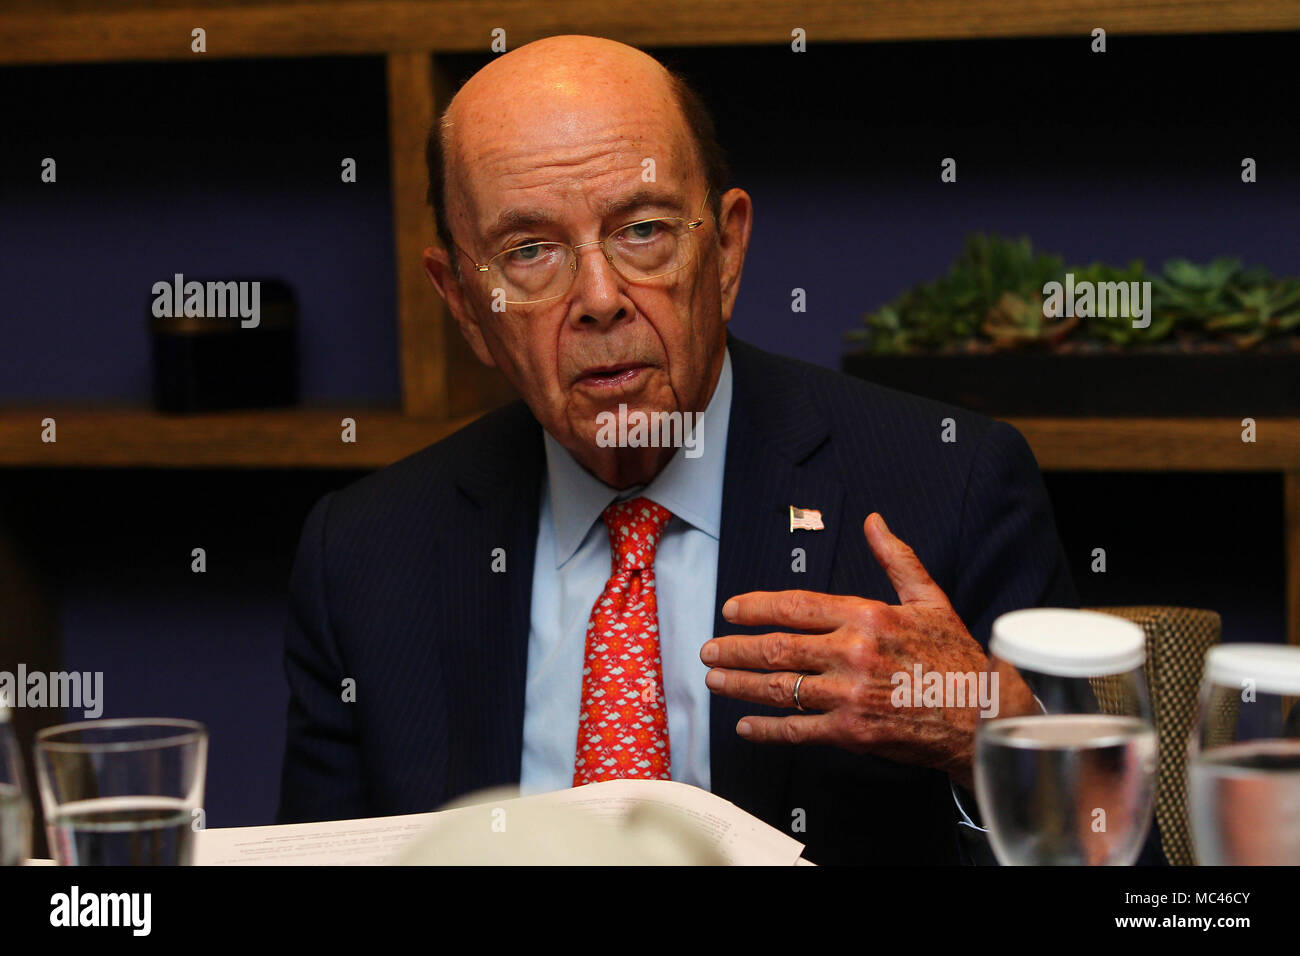 Us Secretary Of Commerce Wilbur Ross Addresses The Media In Lima